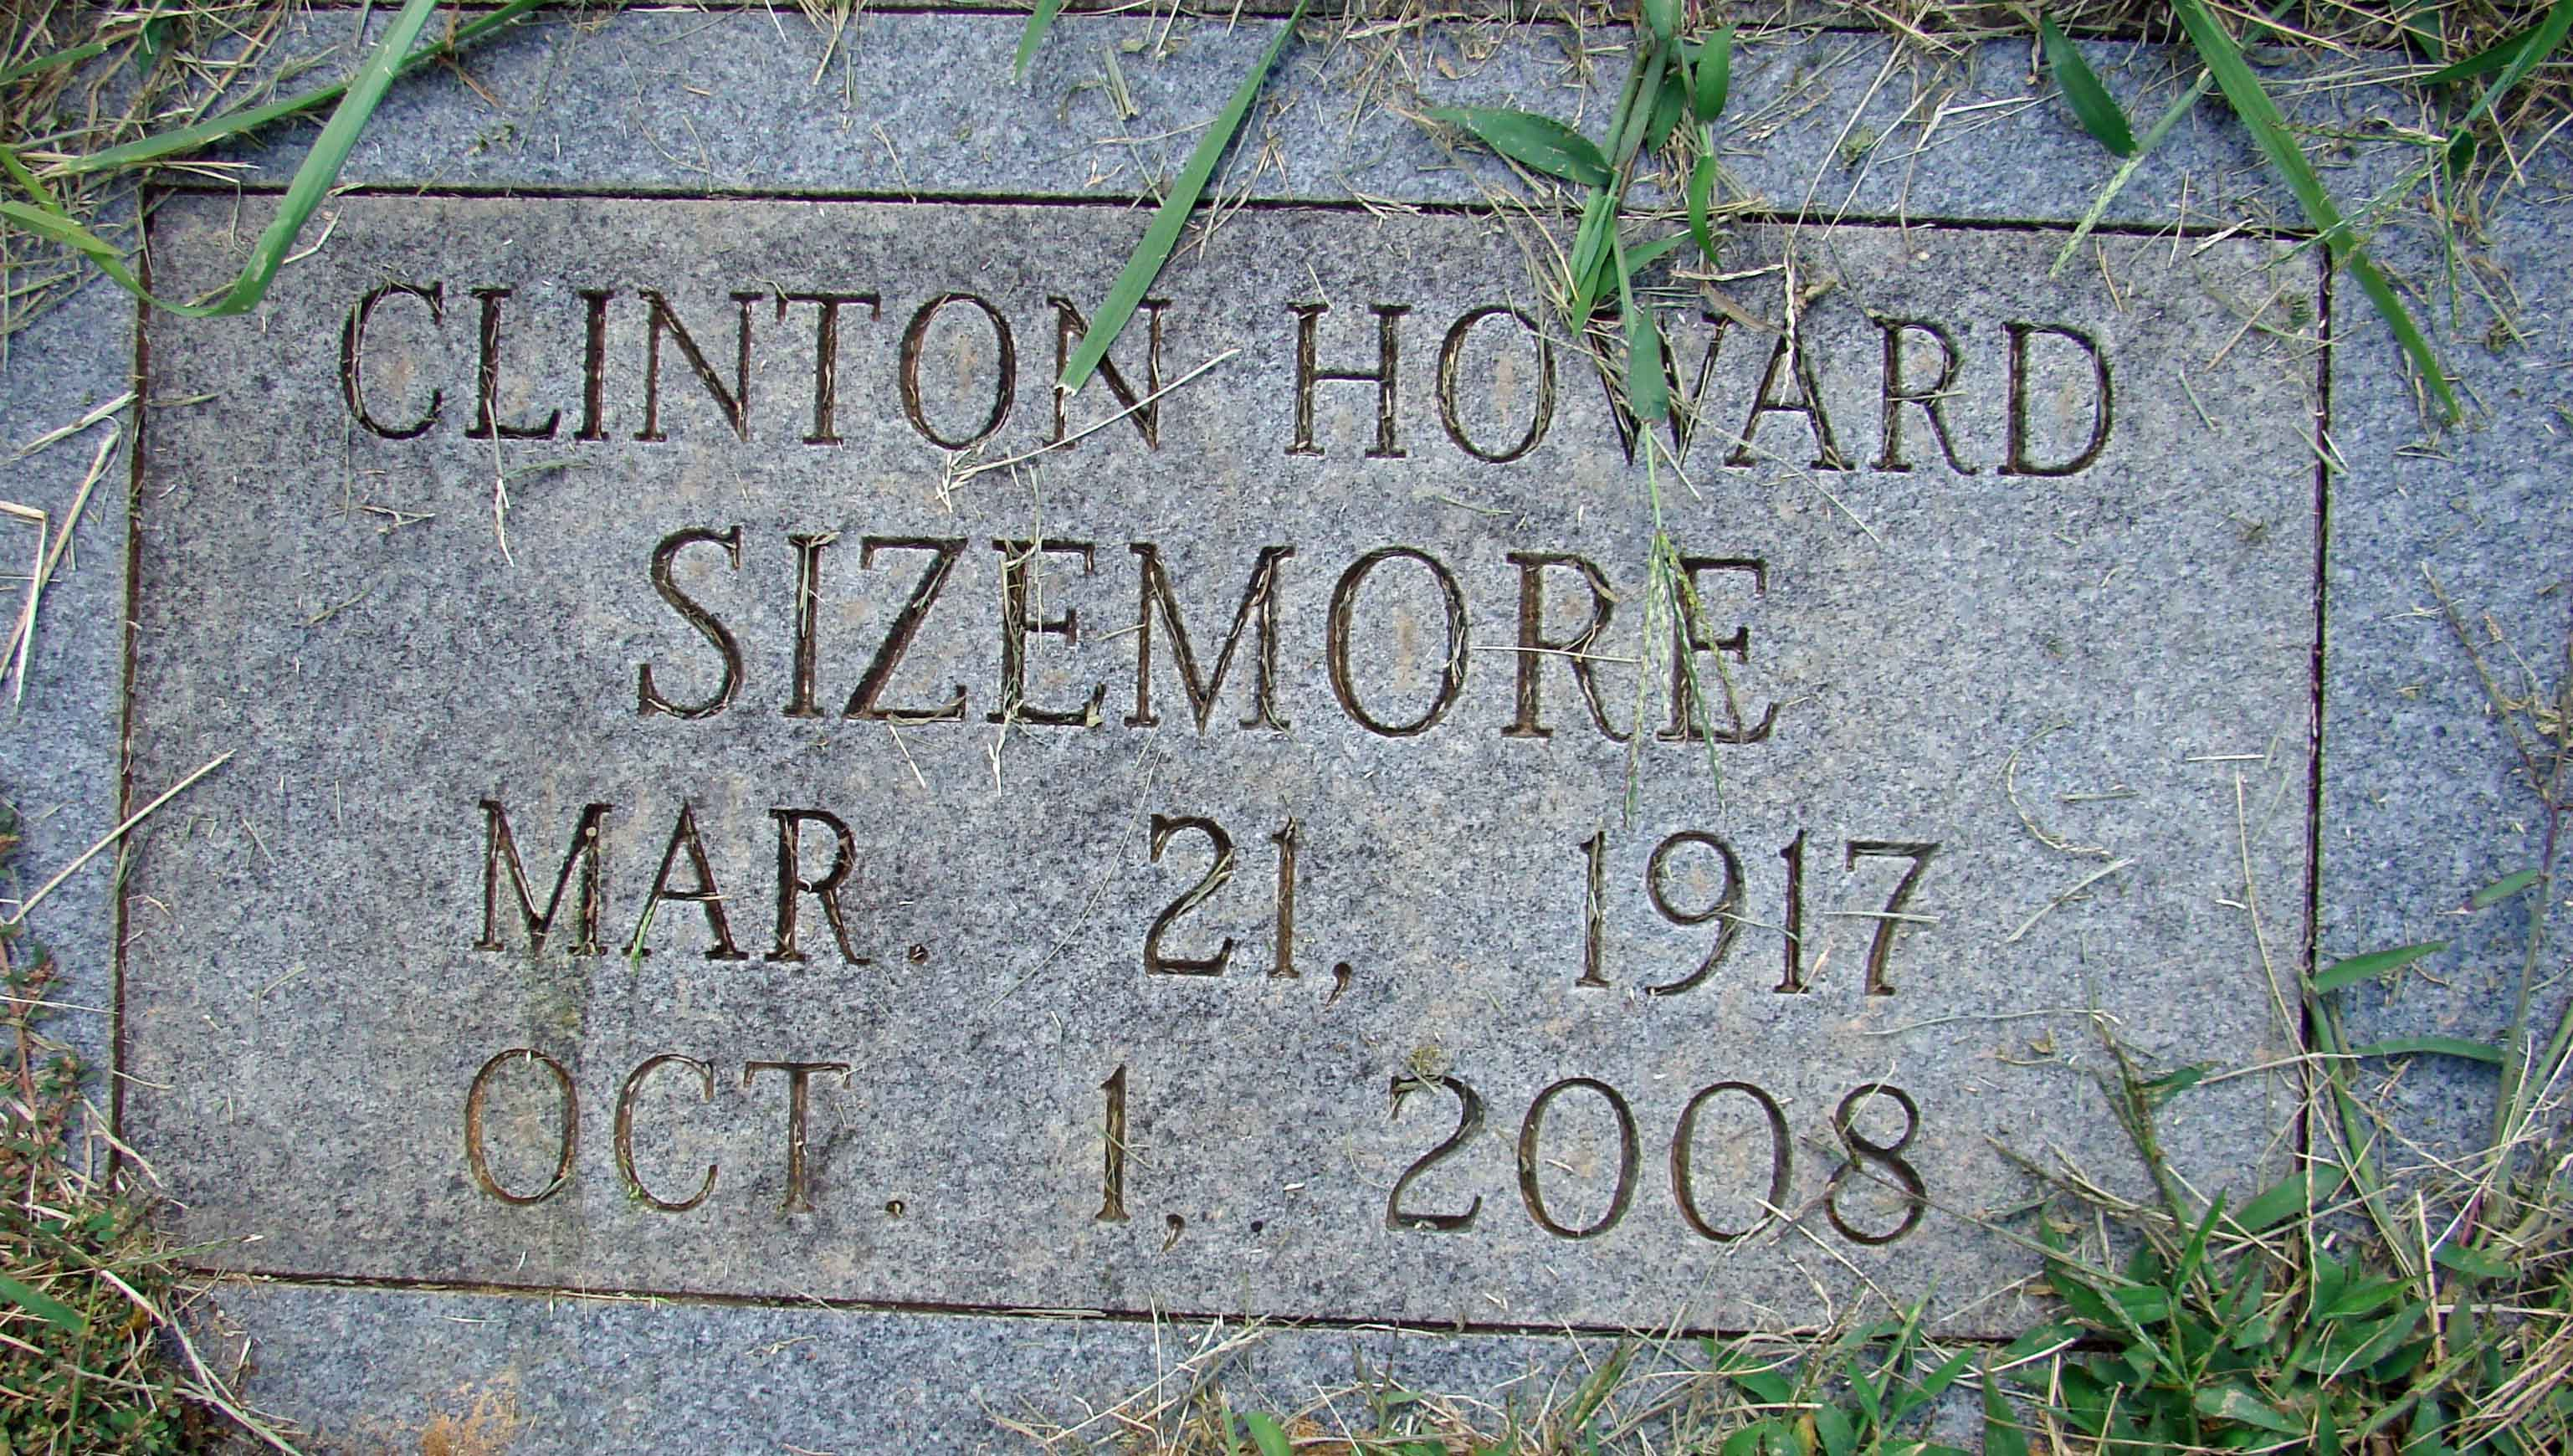 Howard Sizemore